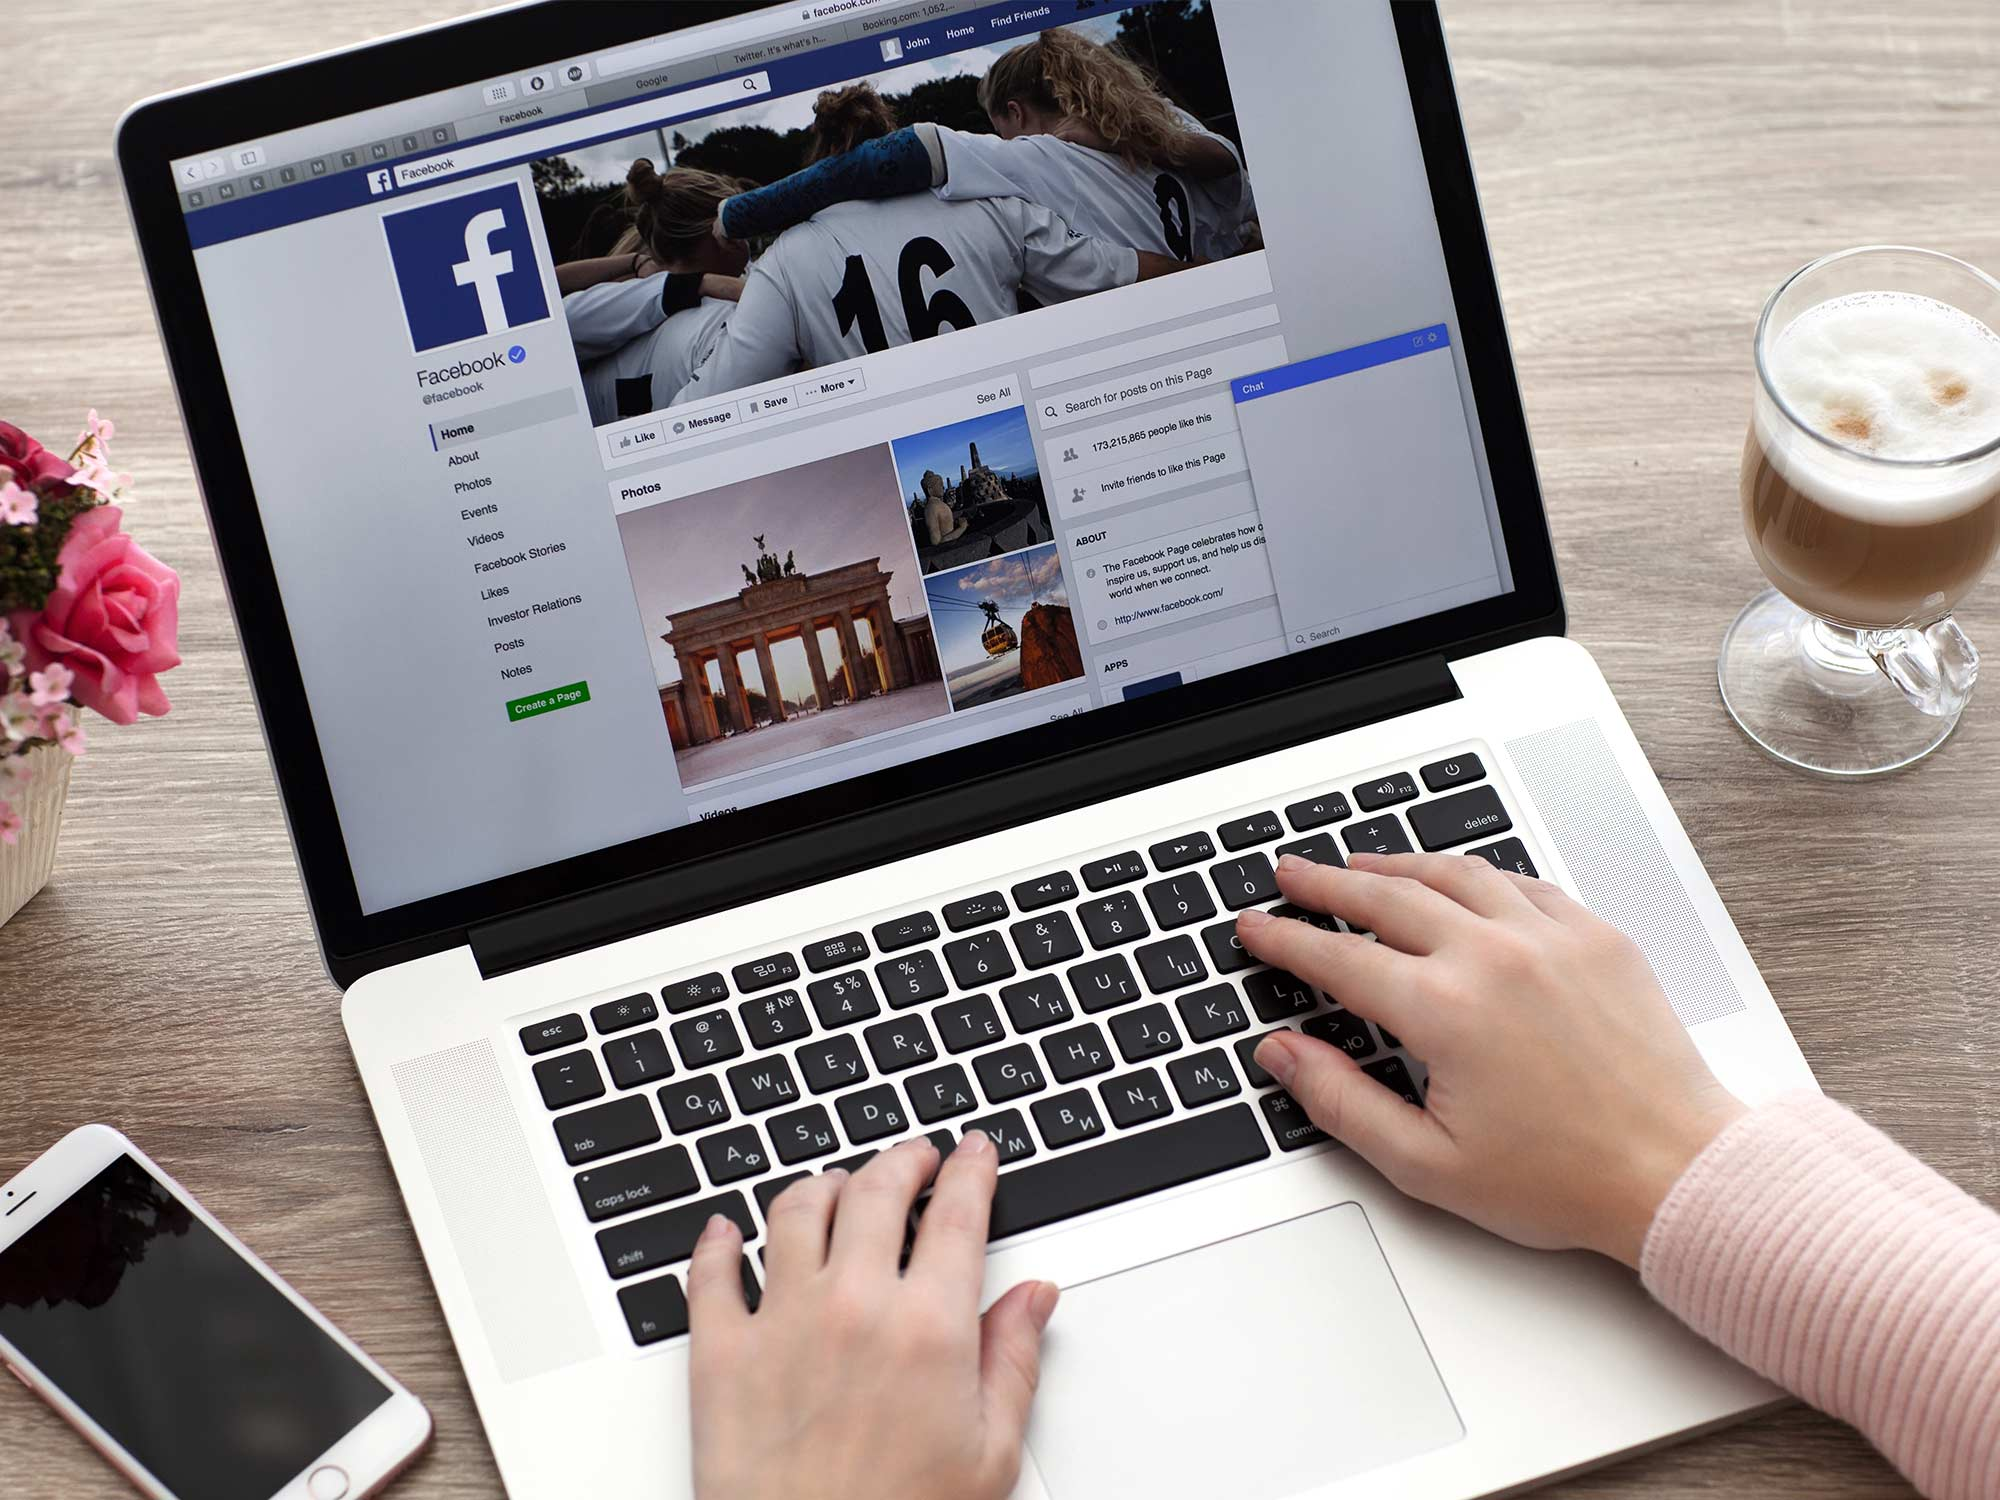 facebook news sharing agence communication social media